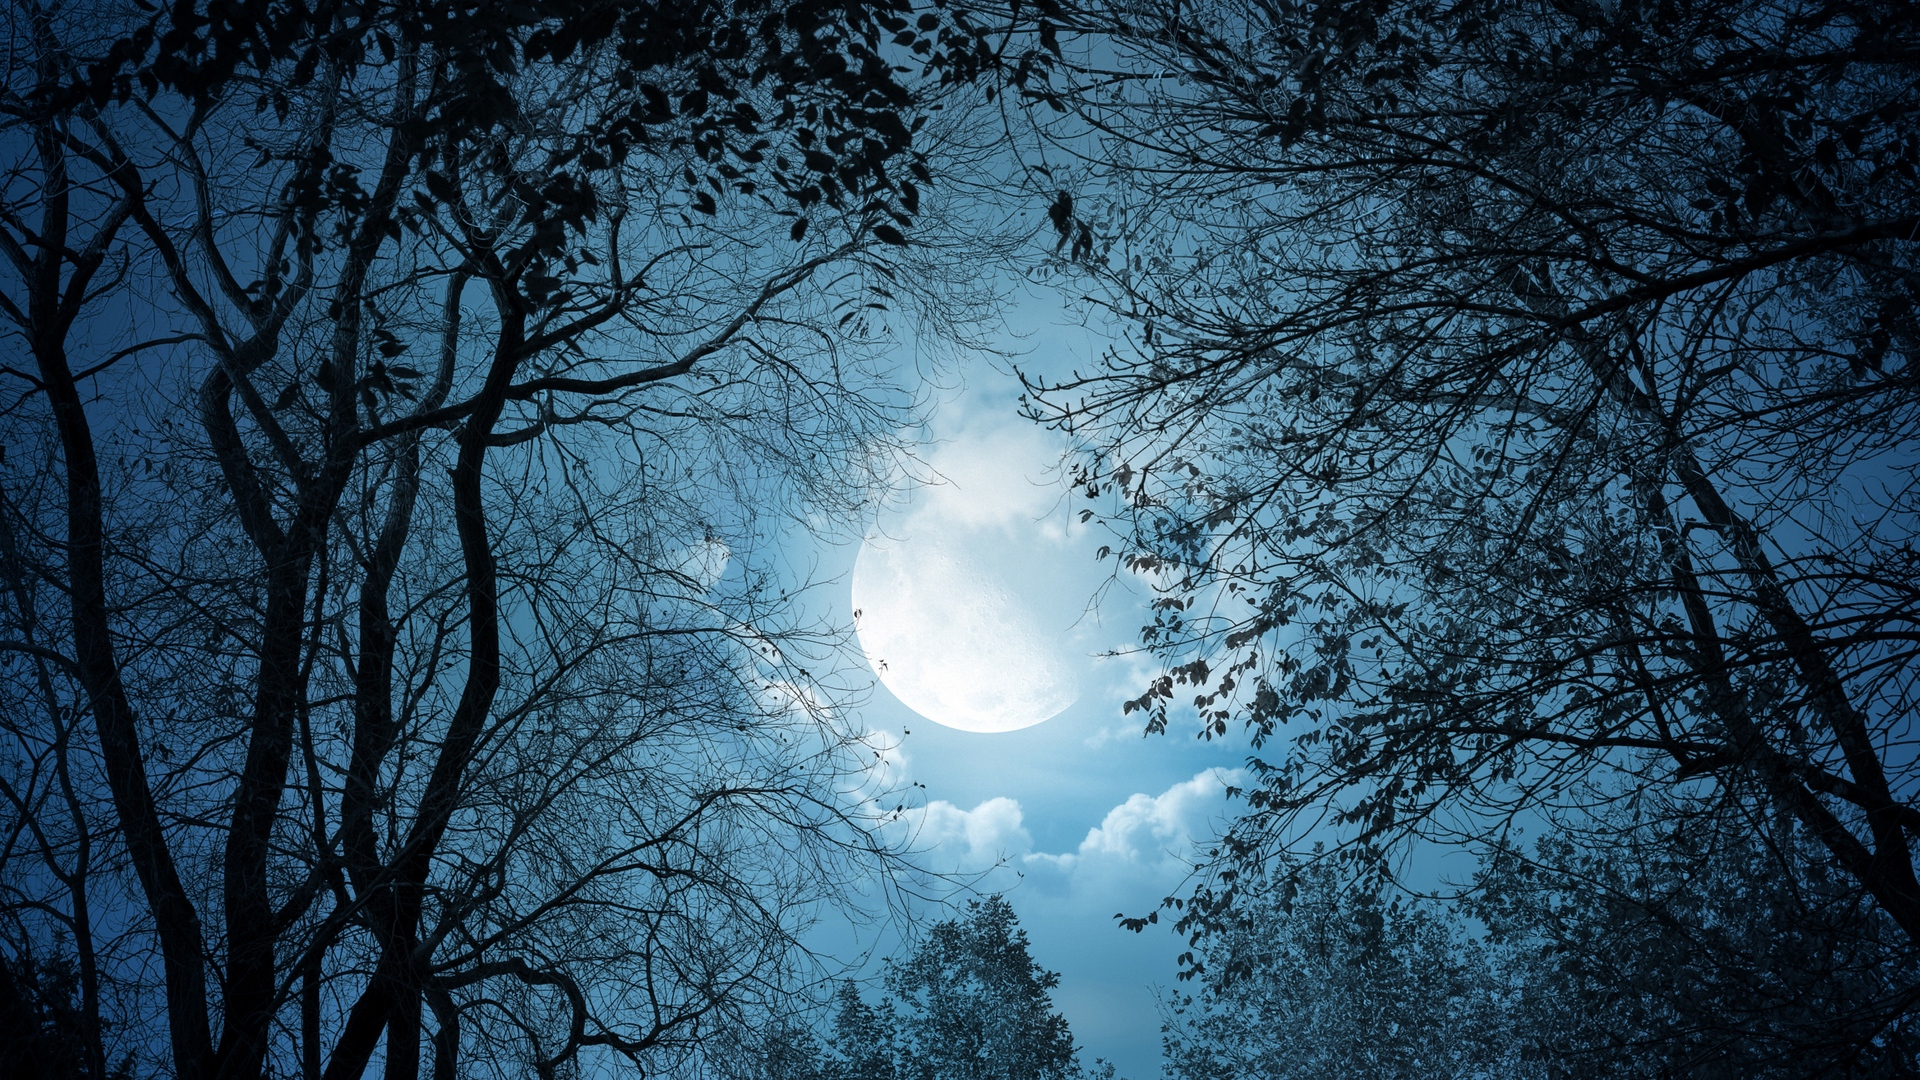 prospect,and,view,branches,sentiment,daydream,regard,tree,space,topological space,moon,dark,moon hd,survey,aspect,night,persuasion,blank space